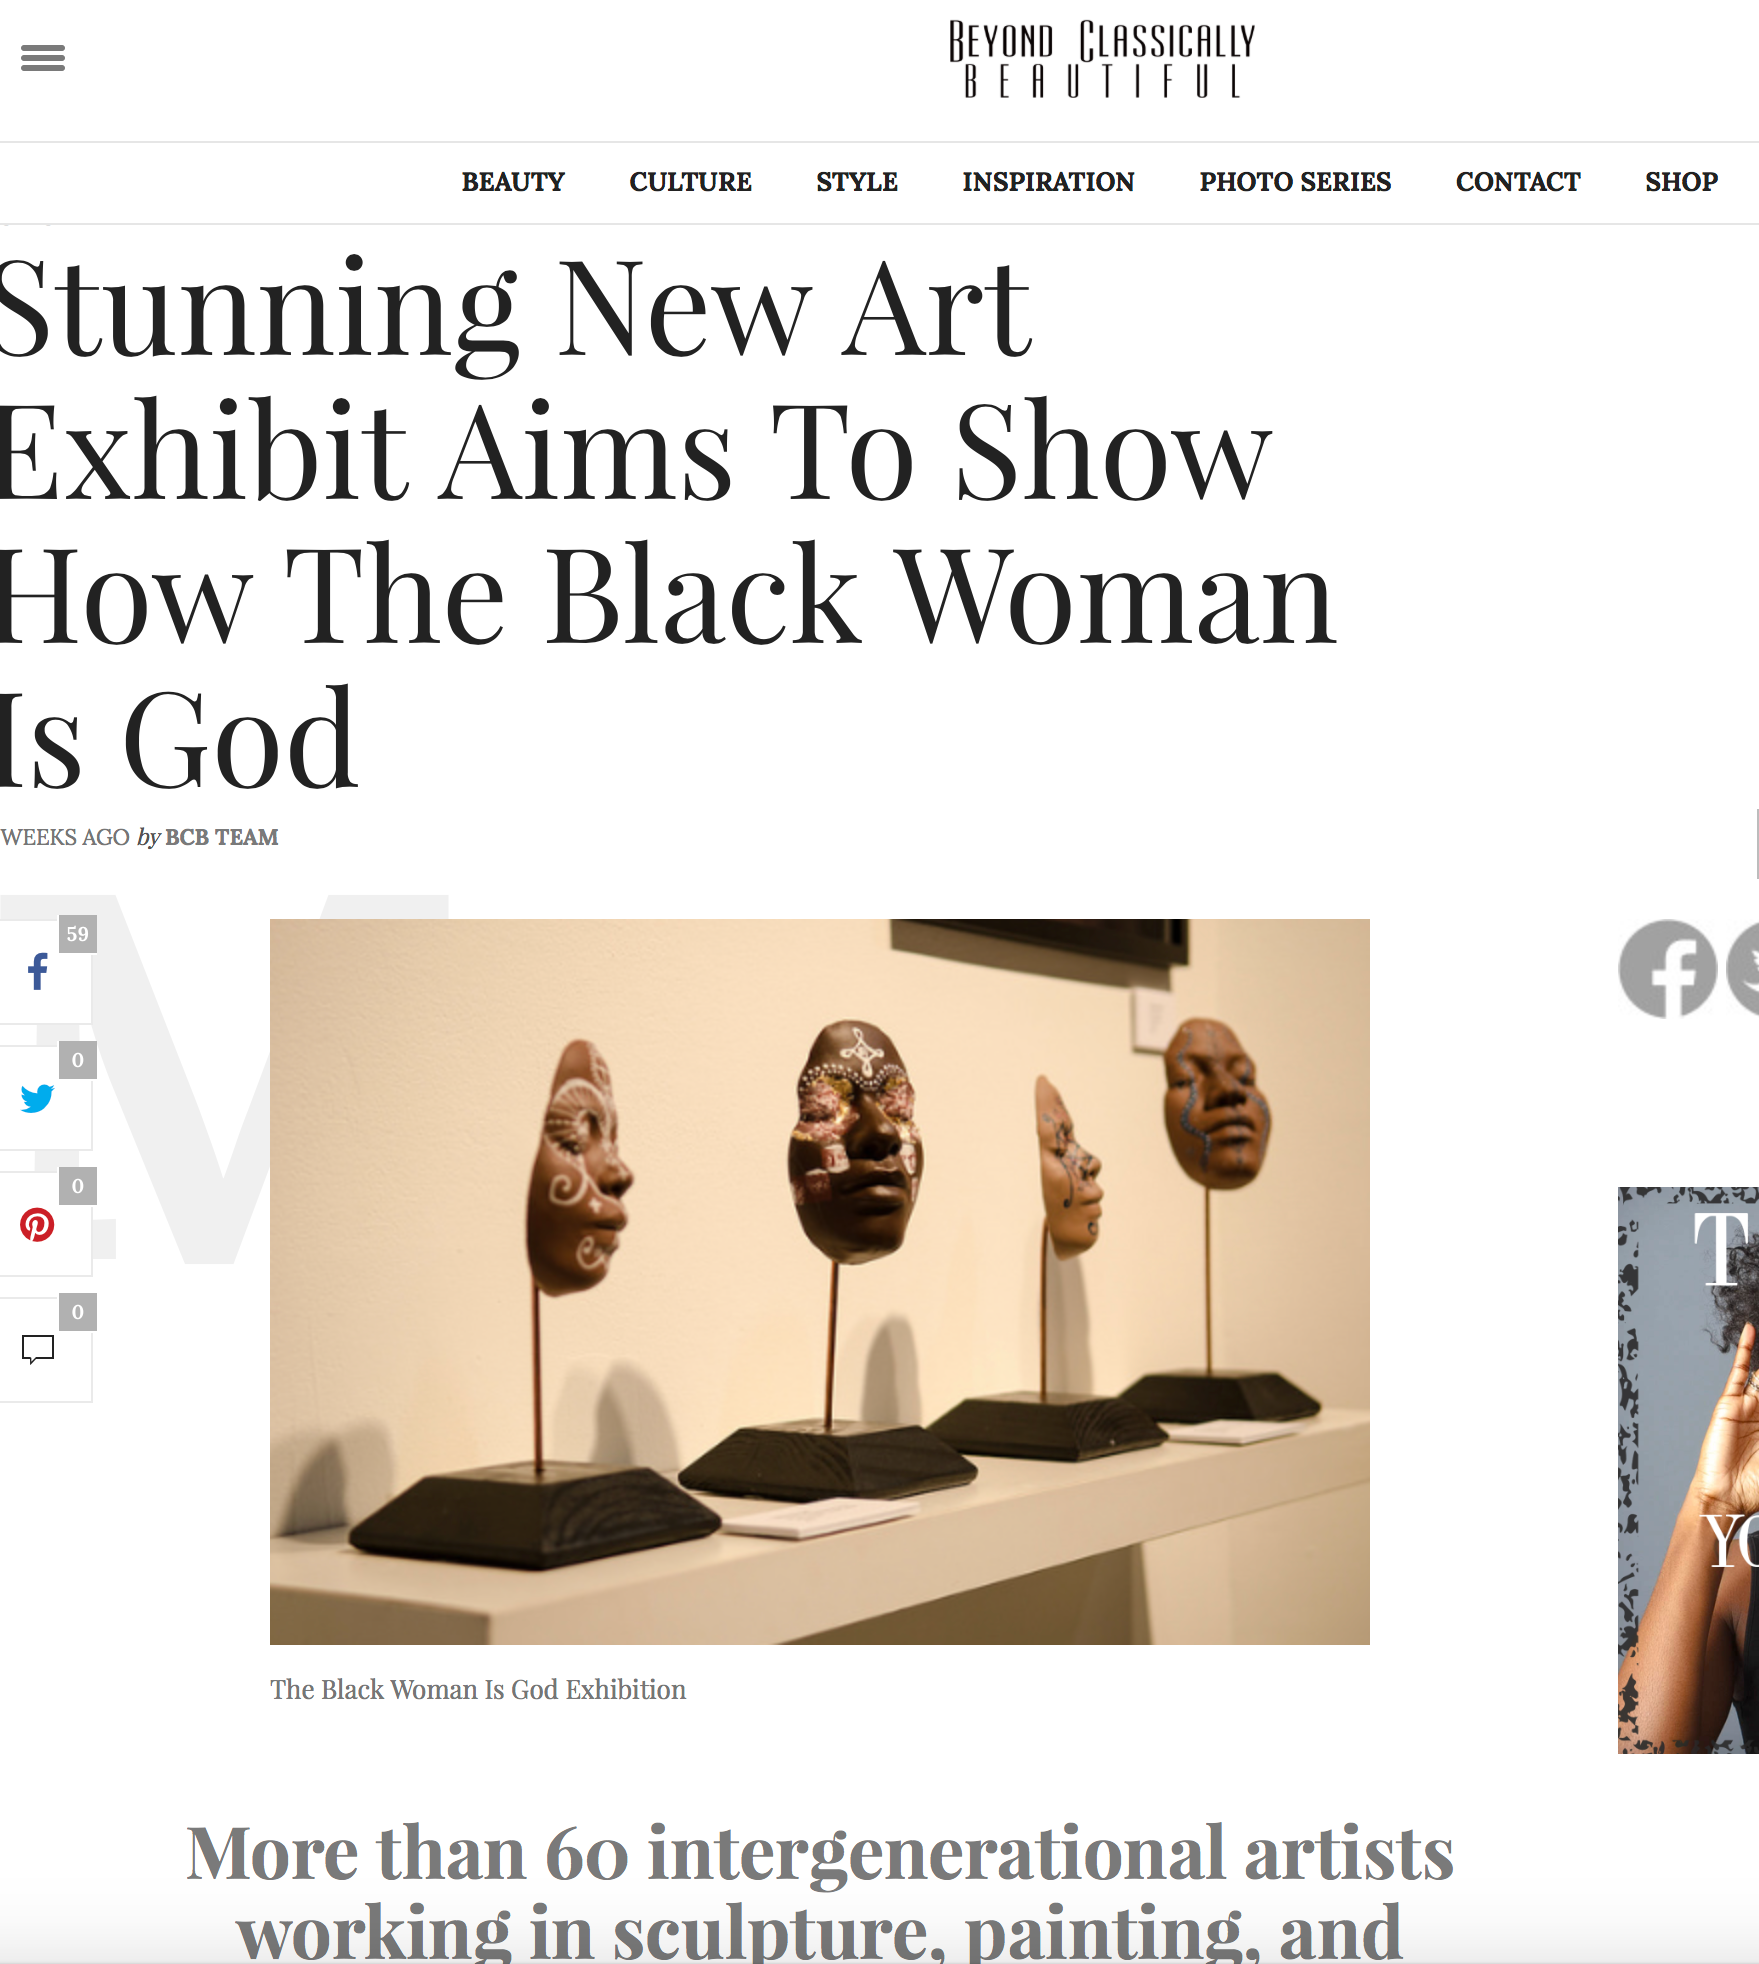 """BCB Team. """"Stunning New Art Exhibit Aims To Show How The Black Woman Is God."""" Beyond Classically Beautiful. July 29, 2016. Accessed August 10, 2016. http://beyondclassicallybeautiful.com/2016/07/stunning-new-art-exhibit-aims-to-prove-the-black-woman-is-god/."""